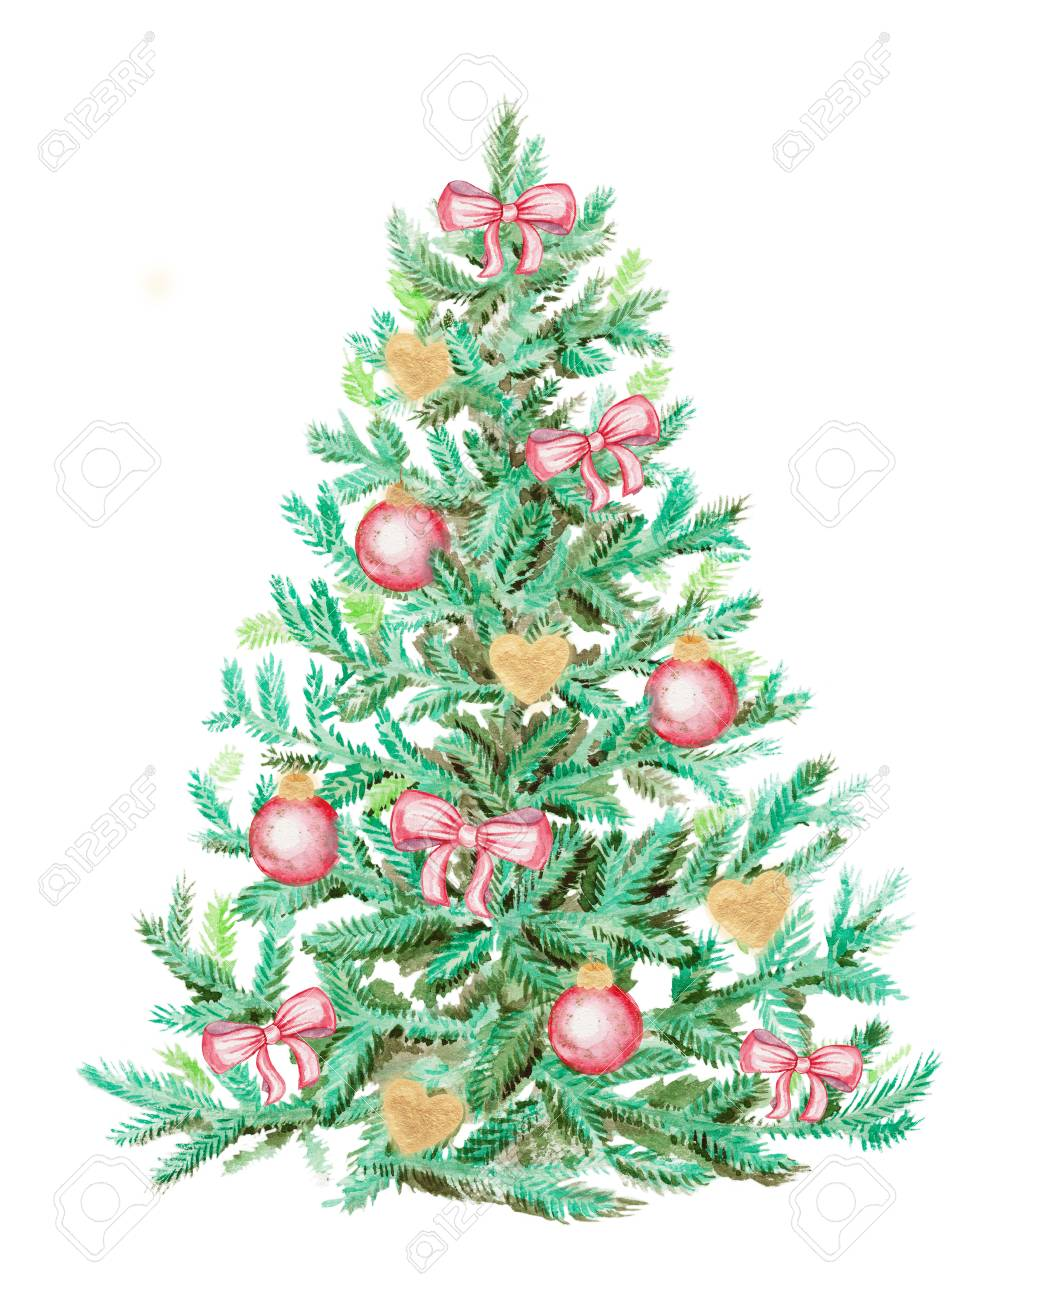 Christmas Tree Bows White.Christmas Tree With Bows And Balls Watercolor Painting Isolated